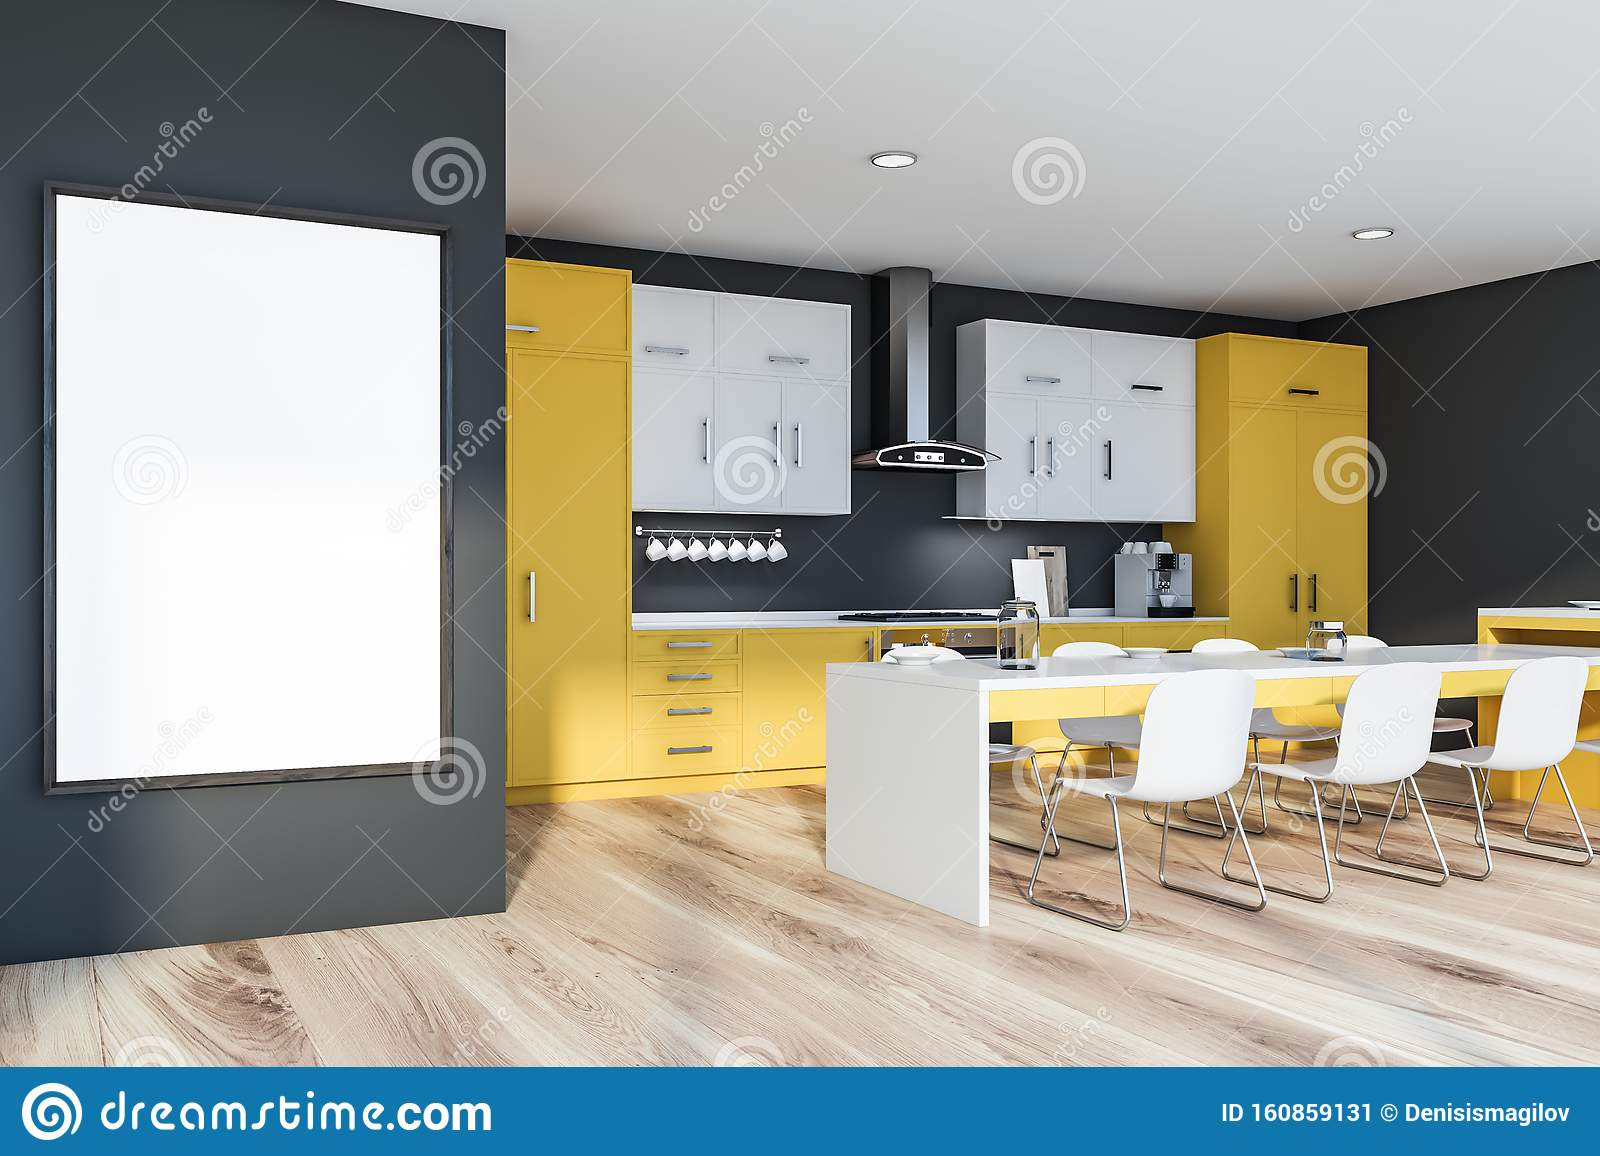 Yellow And Gray Kitchen With Mock Up Poster Table Stock Illustration Illustration Of Clean Grey 160859131